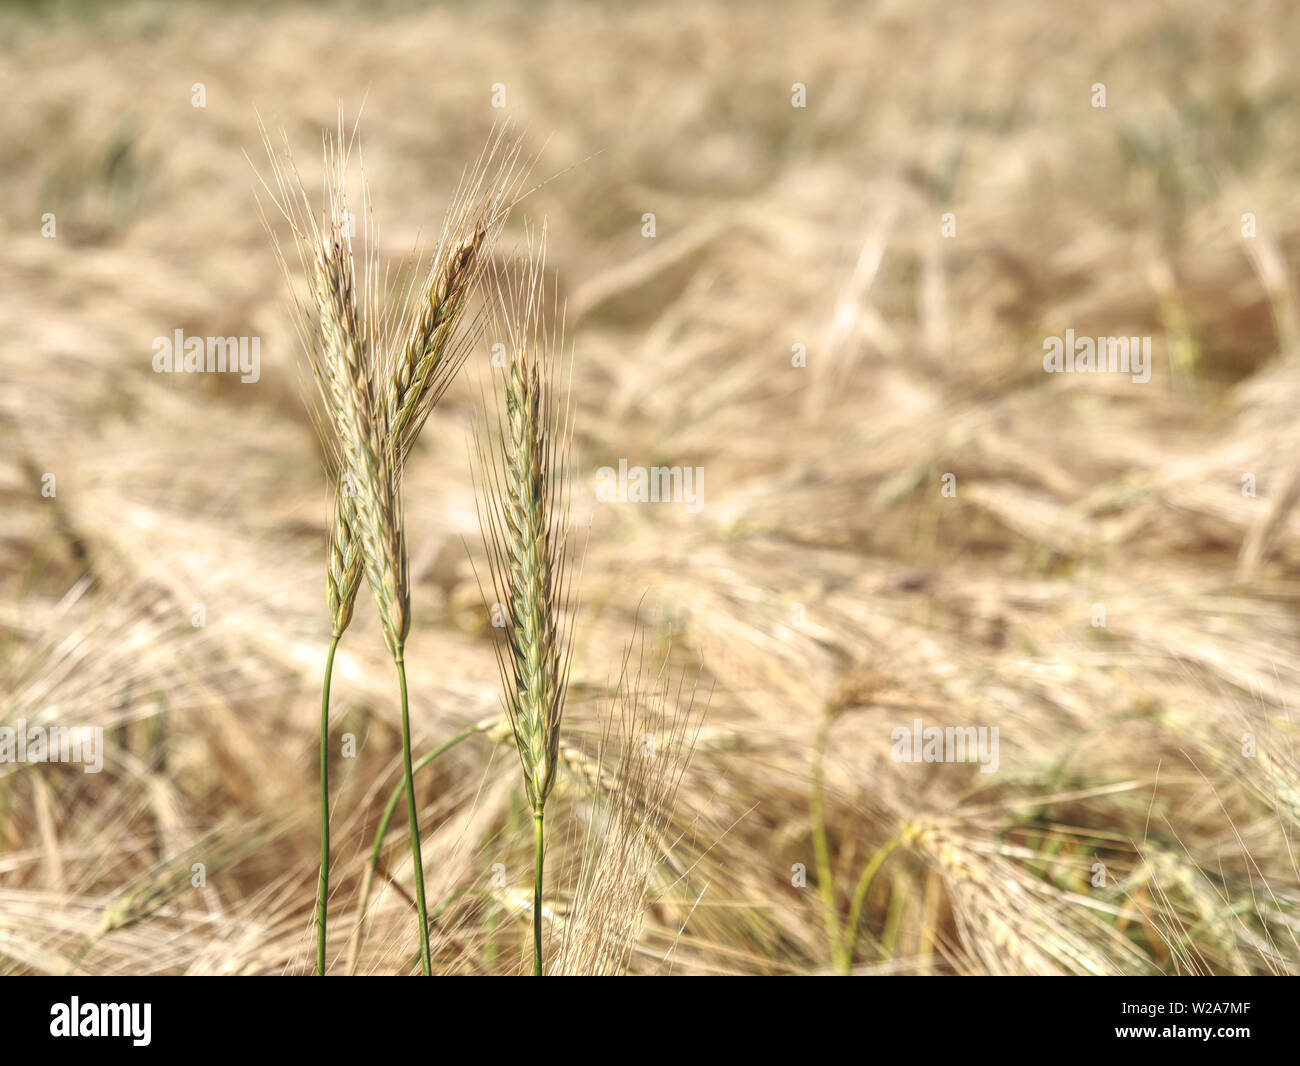 Barley field on the bright summer day.  Detailed view on agricultural crop fields growing on a sunny day in high resolution - Stock Image